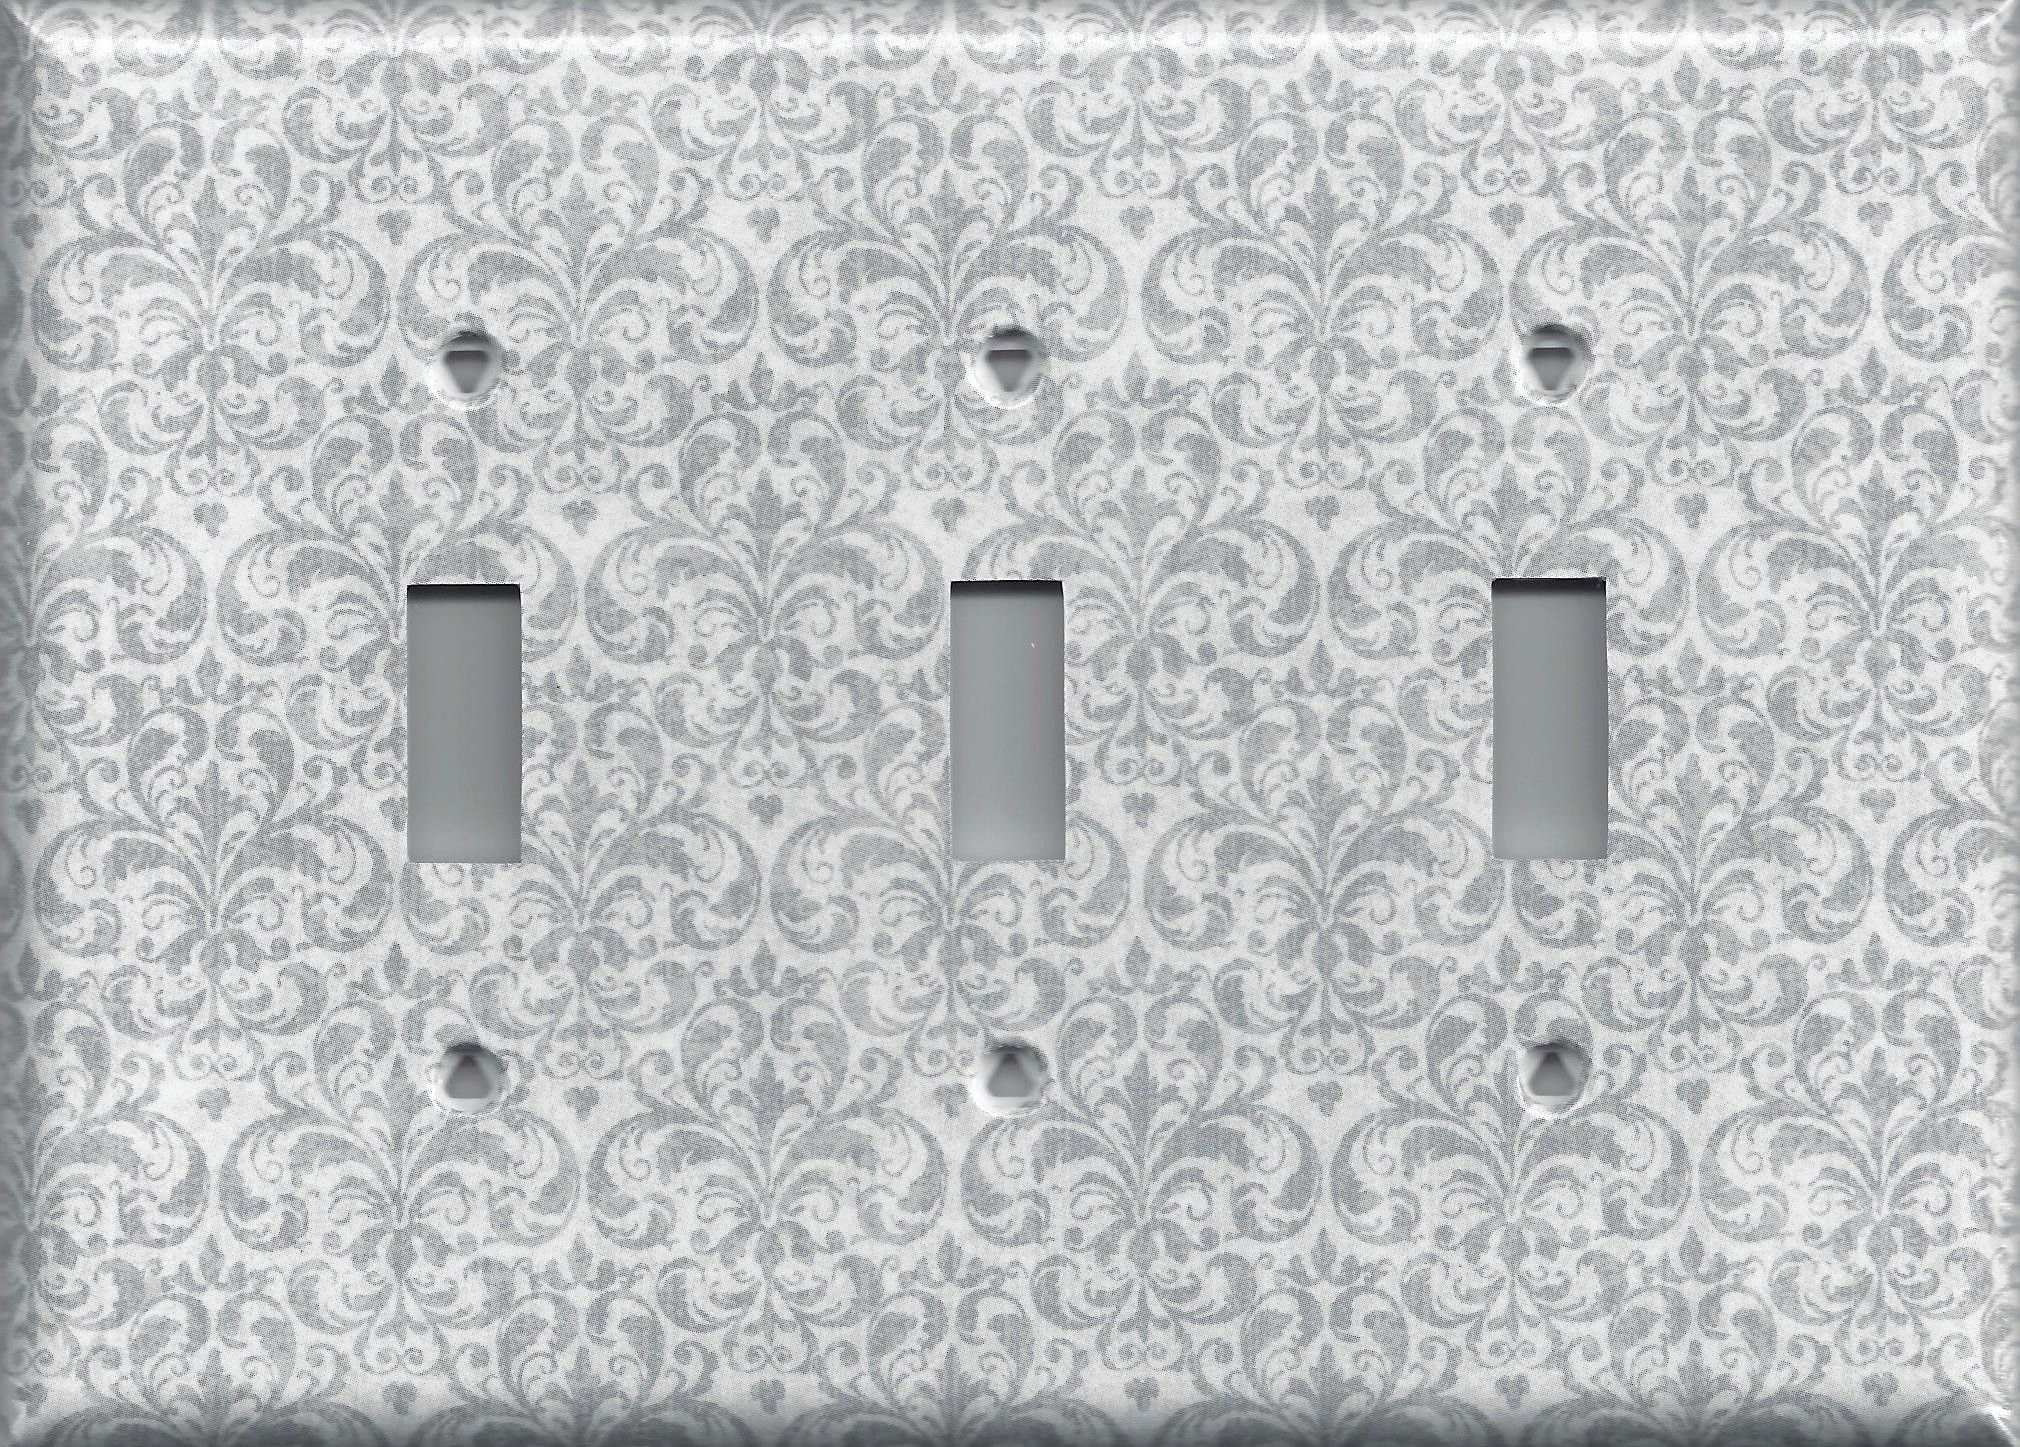 Silver Light Switch Covers Silvergraygrey Damask Print Hand Made Light Switch Plates